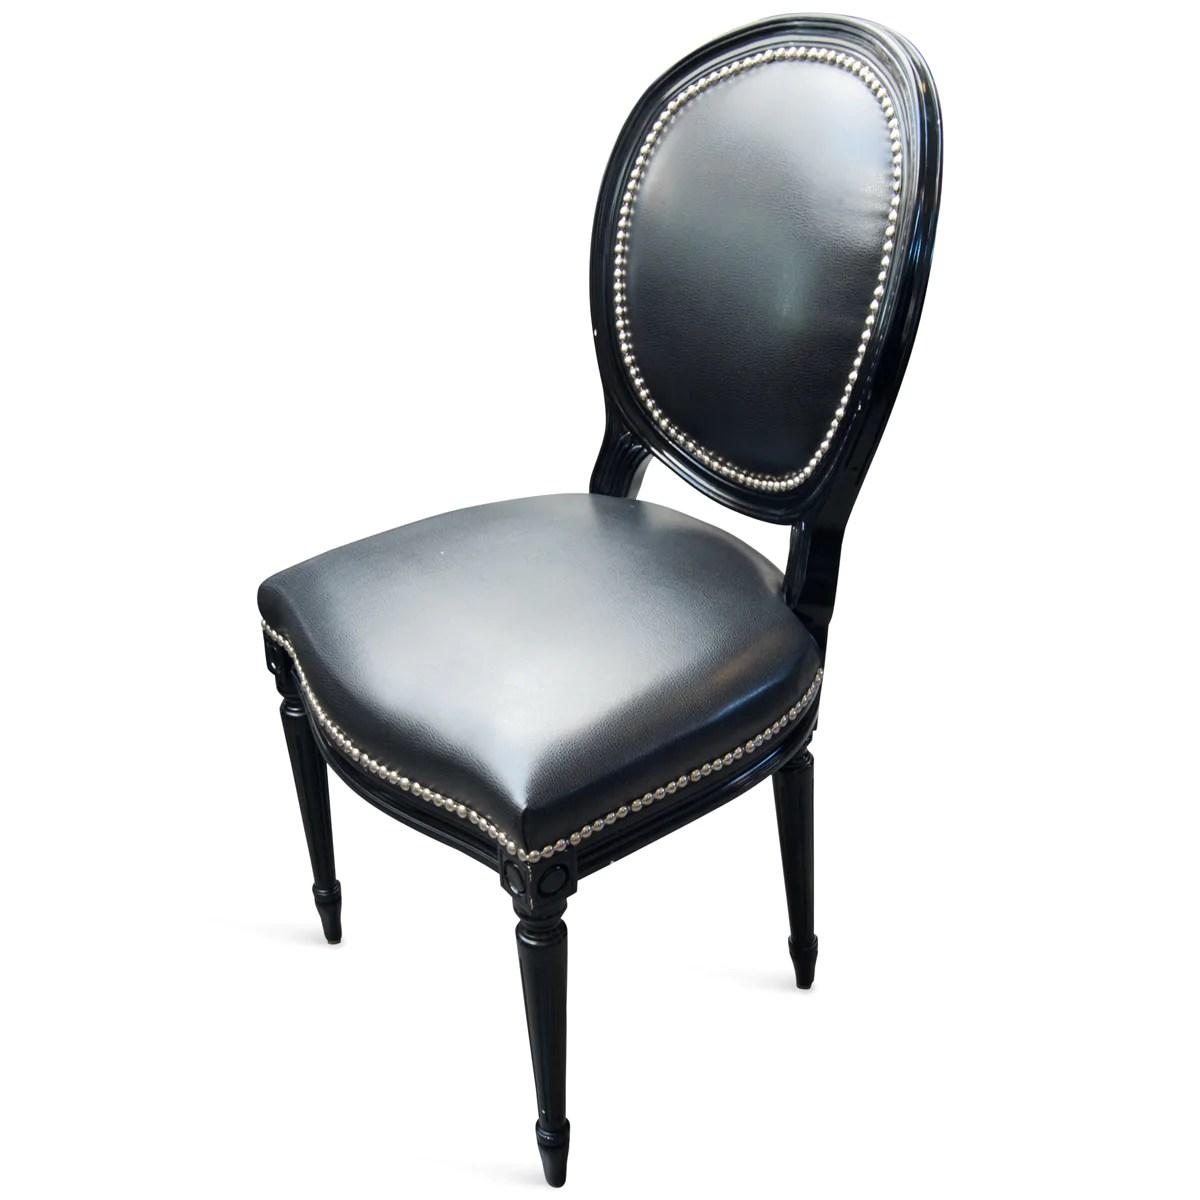 louis dining chairs metal chaise lounge chair black faux leather upholstery modshop